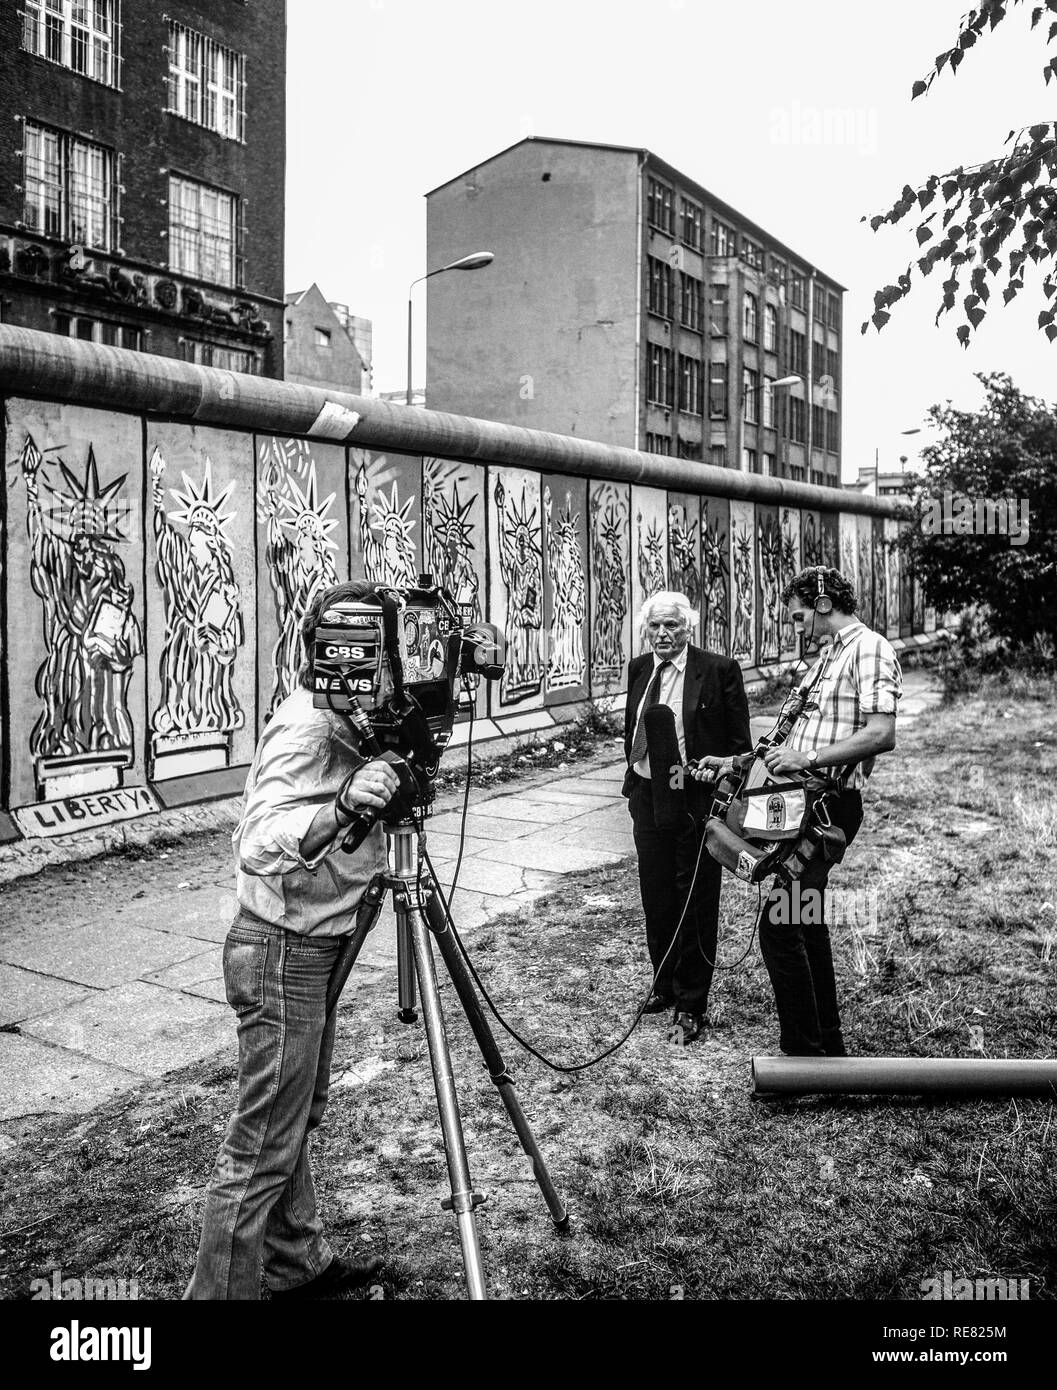 August 1986, CBS TV crew conducting an interview in front of Berlin Wall decorated with Statue of Liberty frescos, West Berlin side, Germany, Europe, Stock Photo